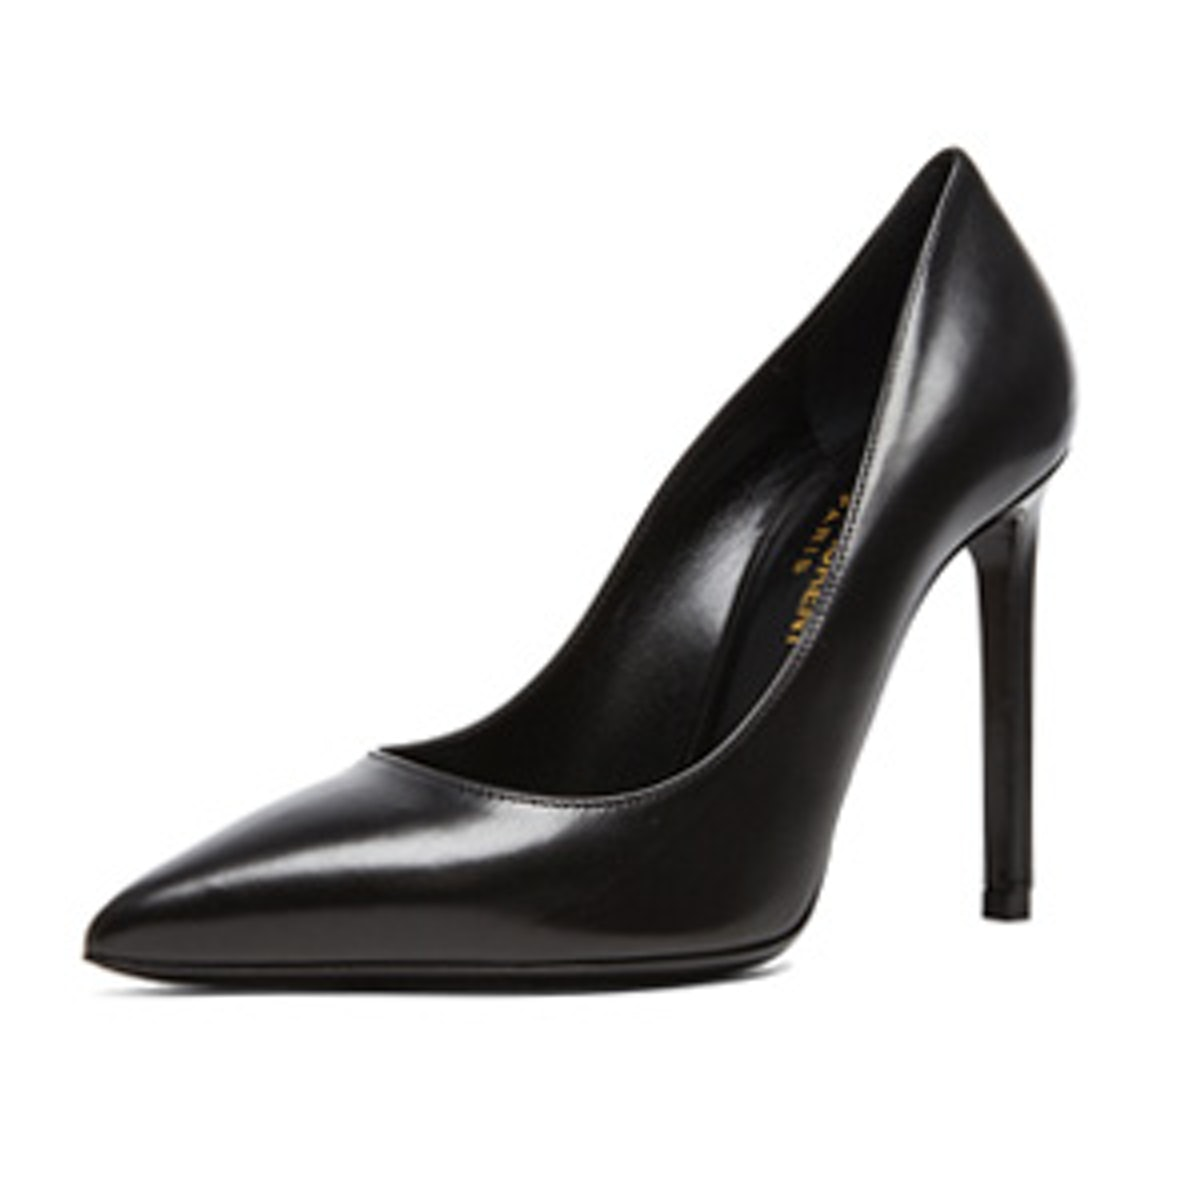 Leather Pumps In Black